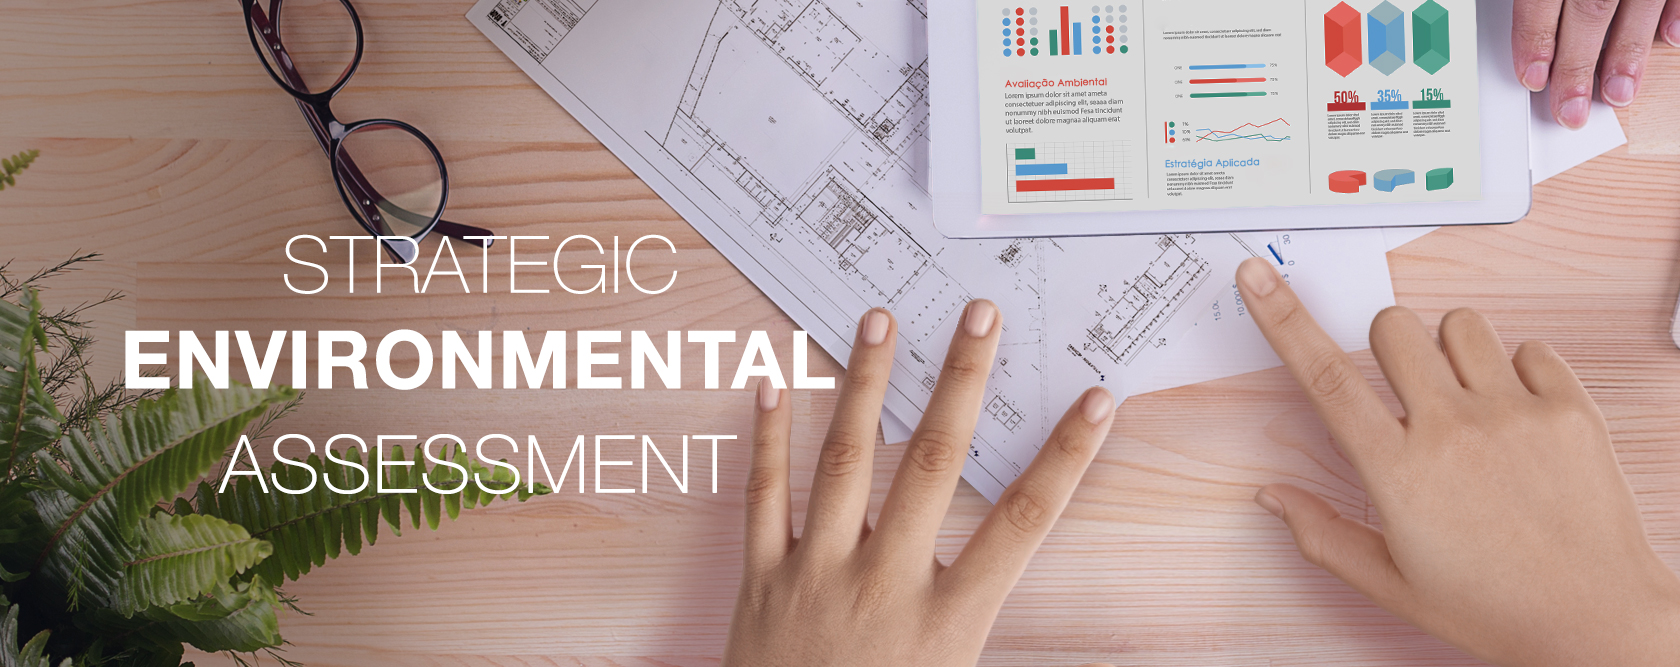 02 03 StrategicEnvironmentalAssessment destaque